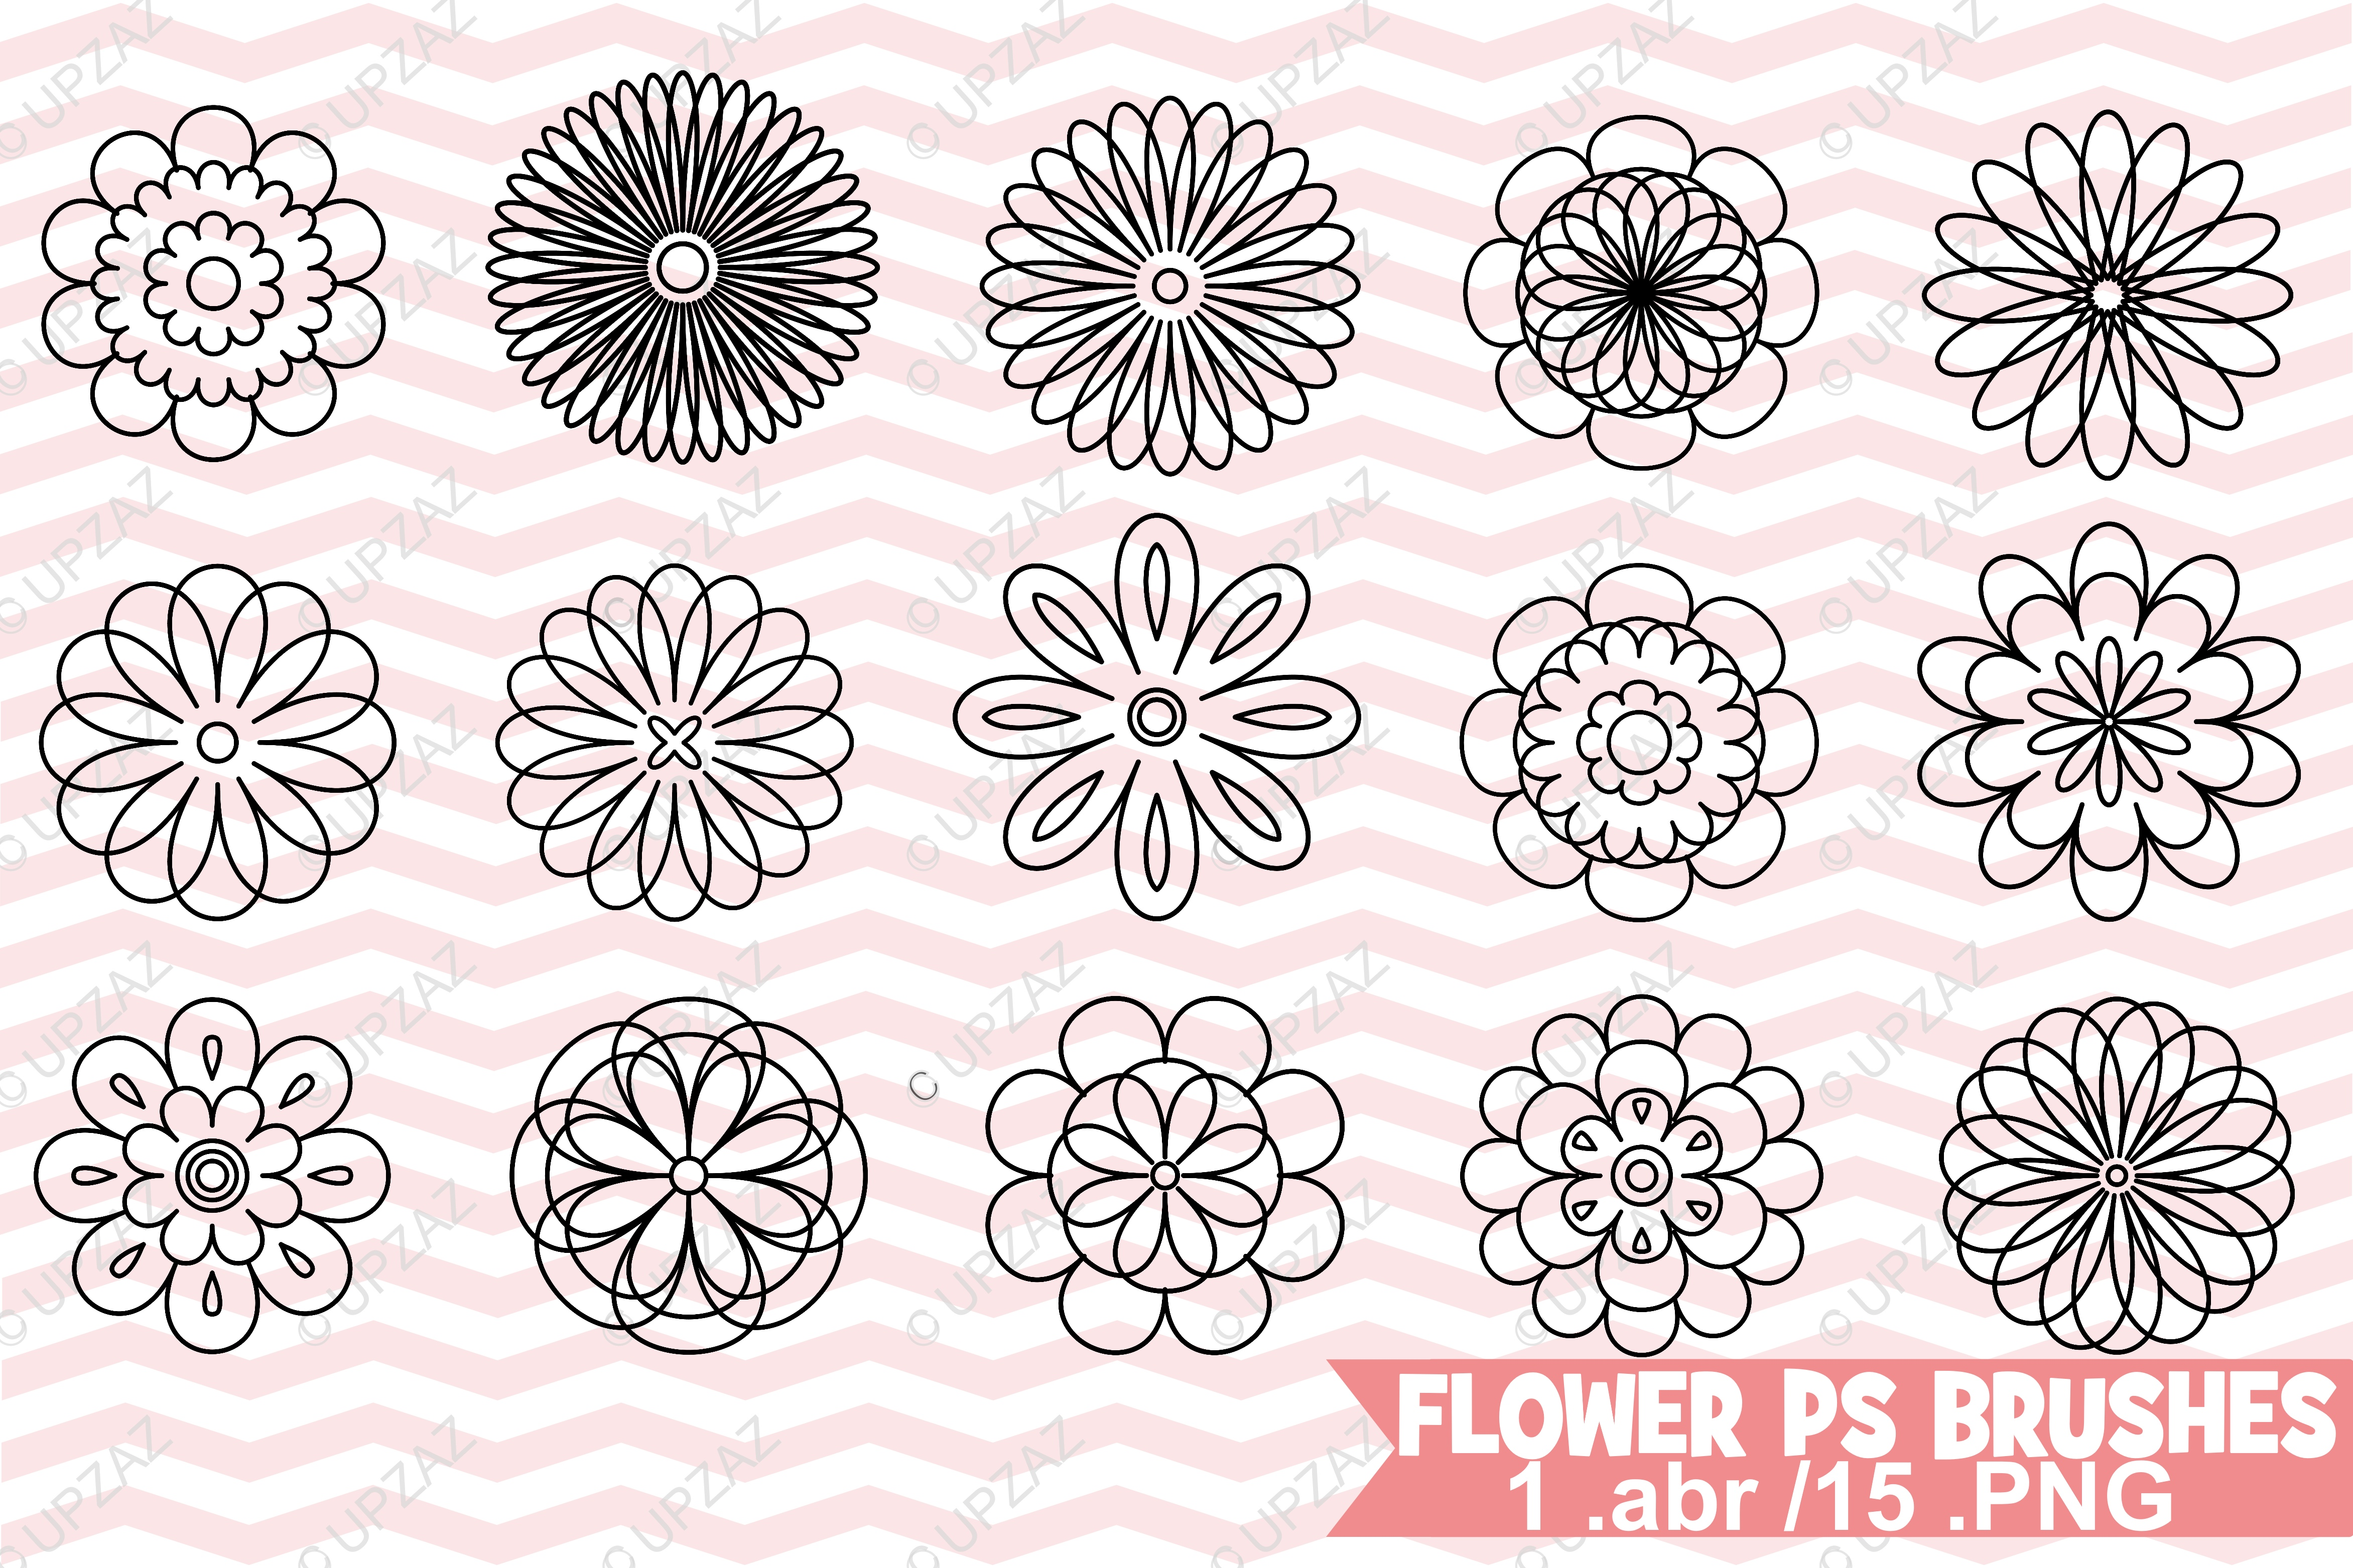 Photoshop Flower Brushes example image 1